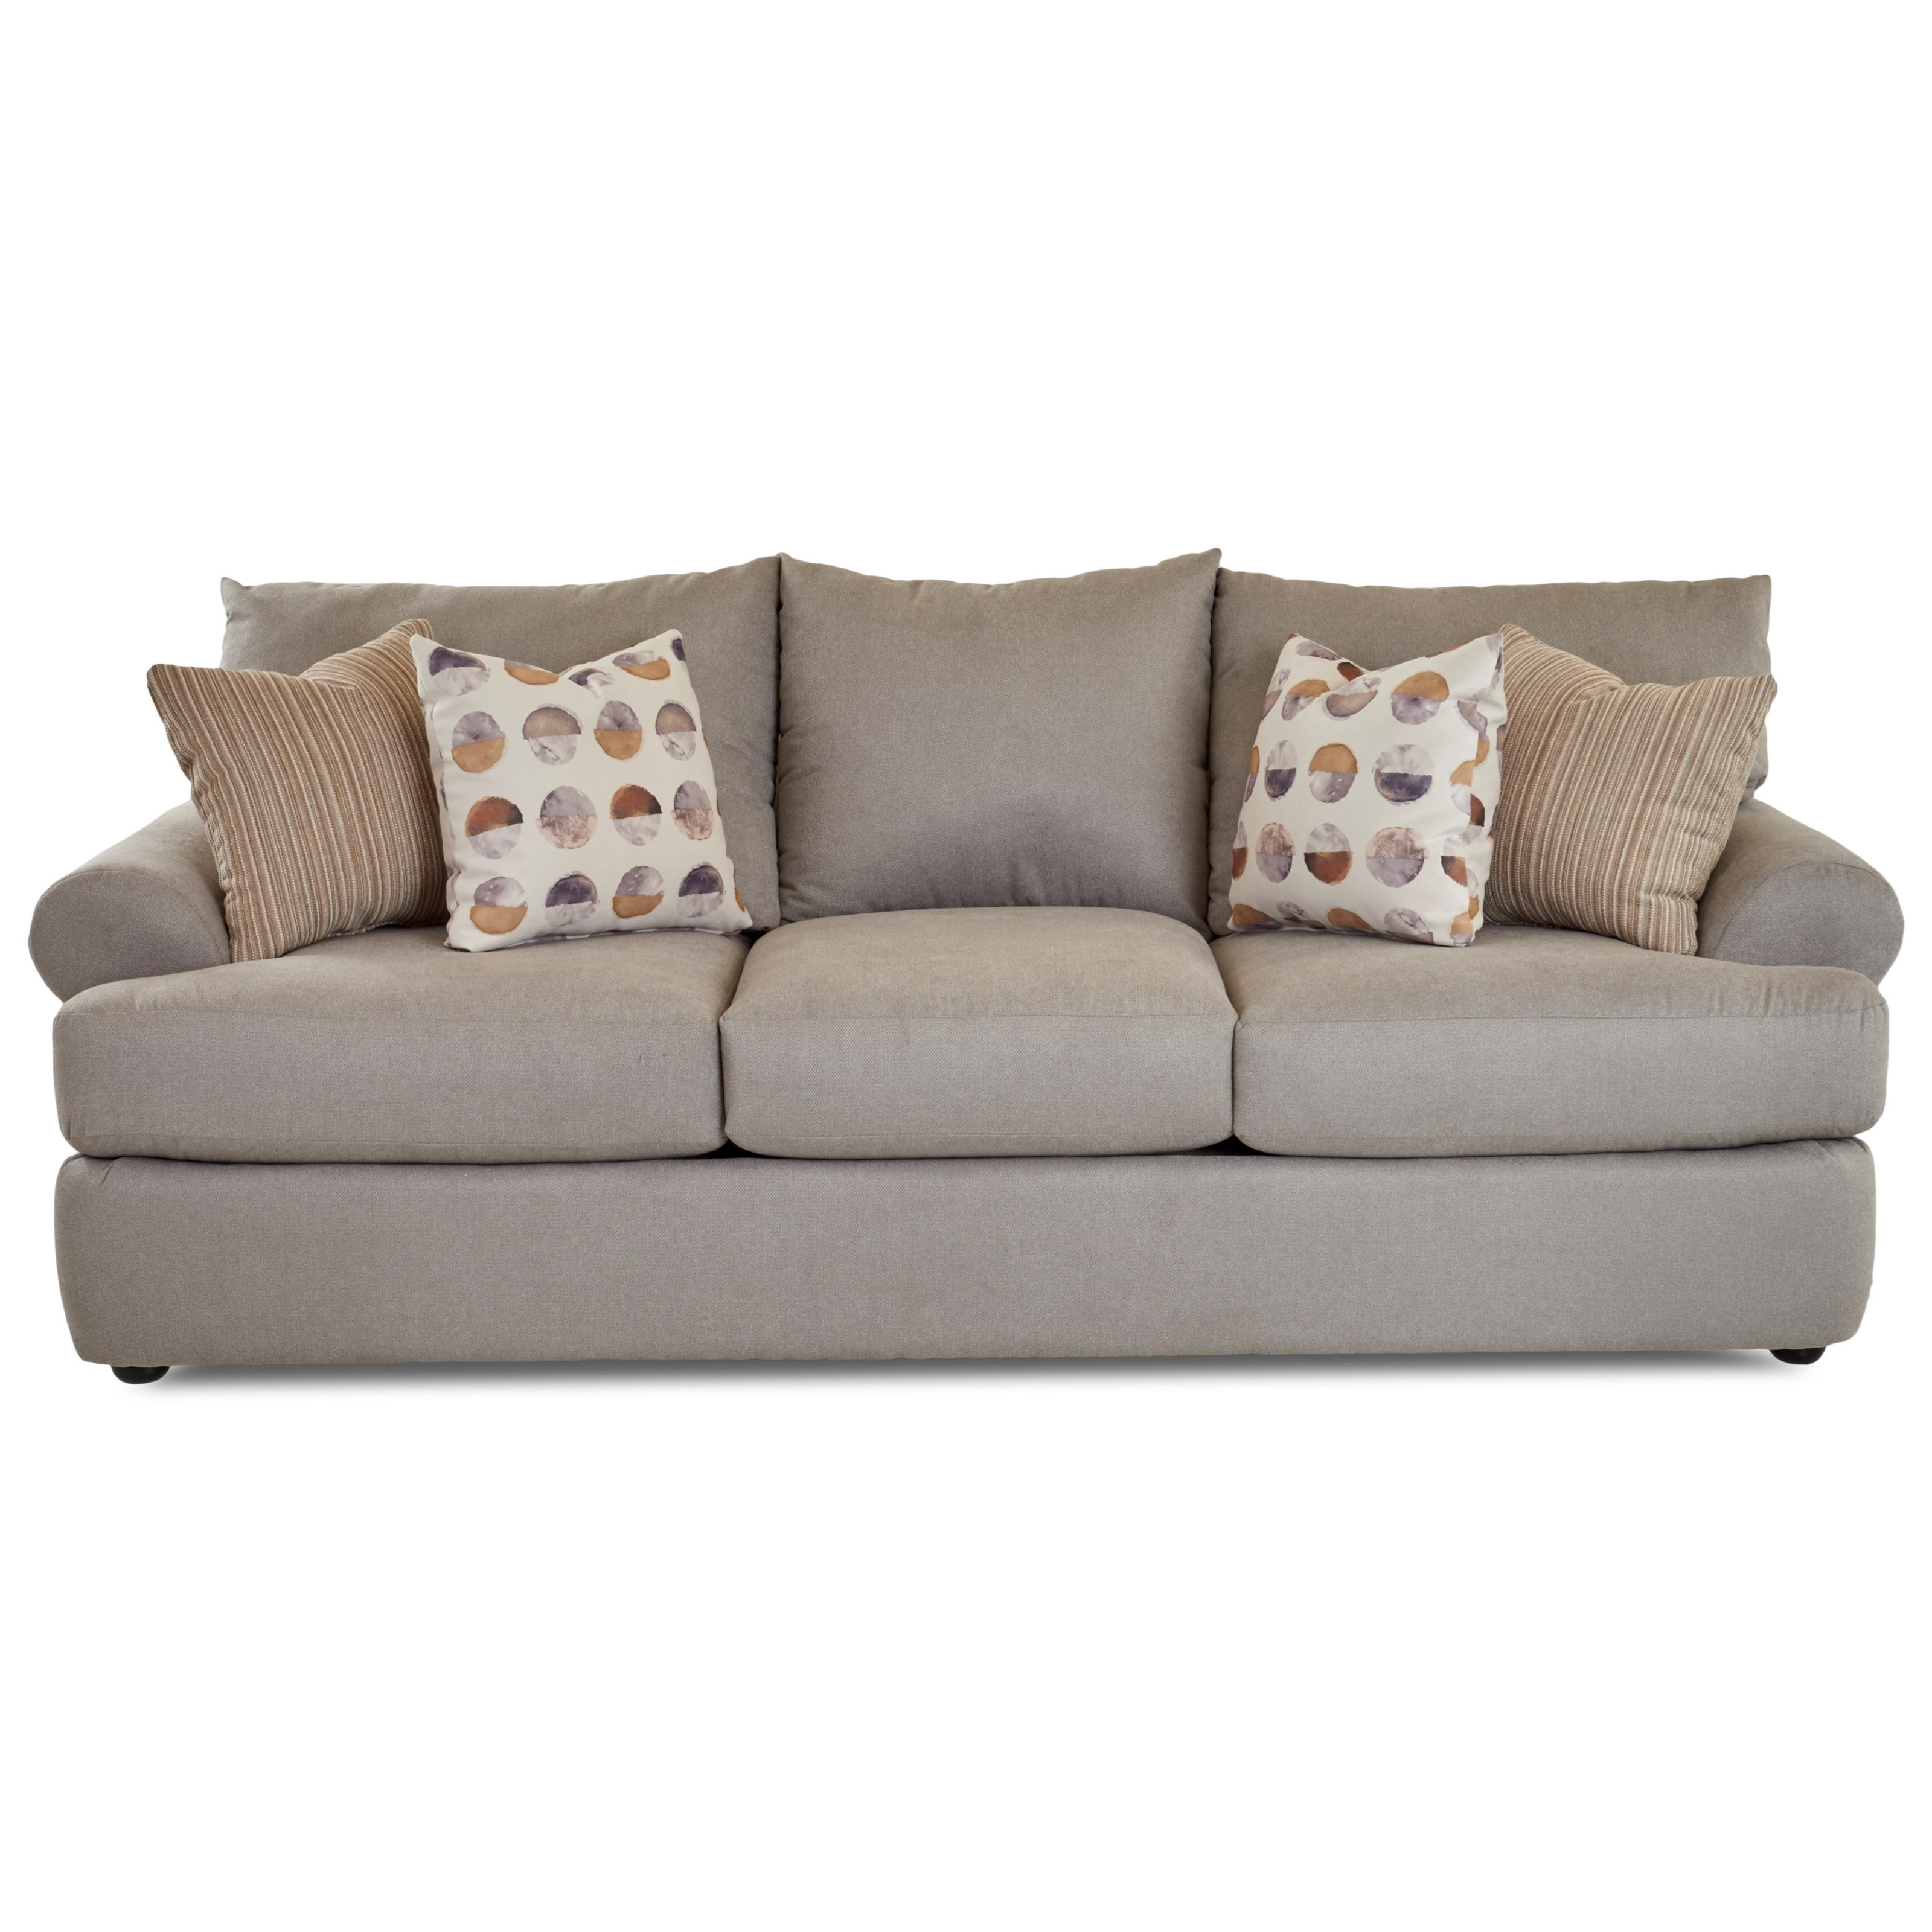 Cora Sofa by Klaussner at Northeast Factory Direct